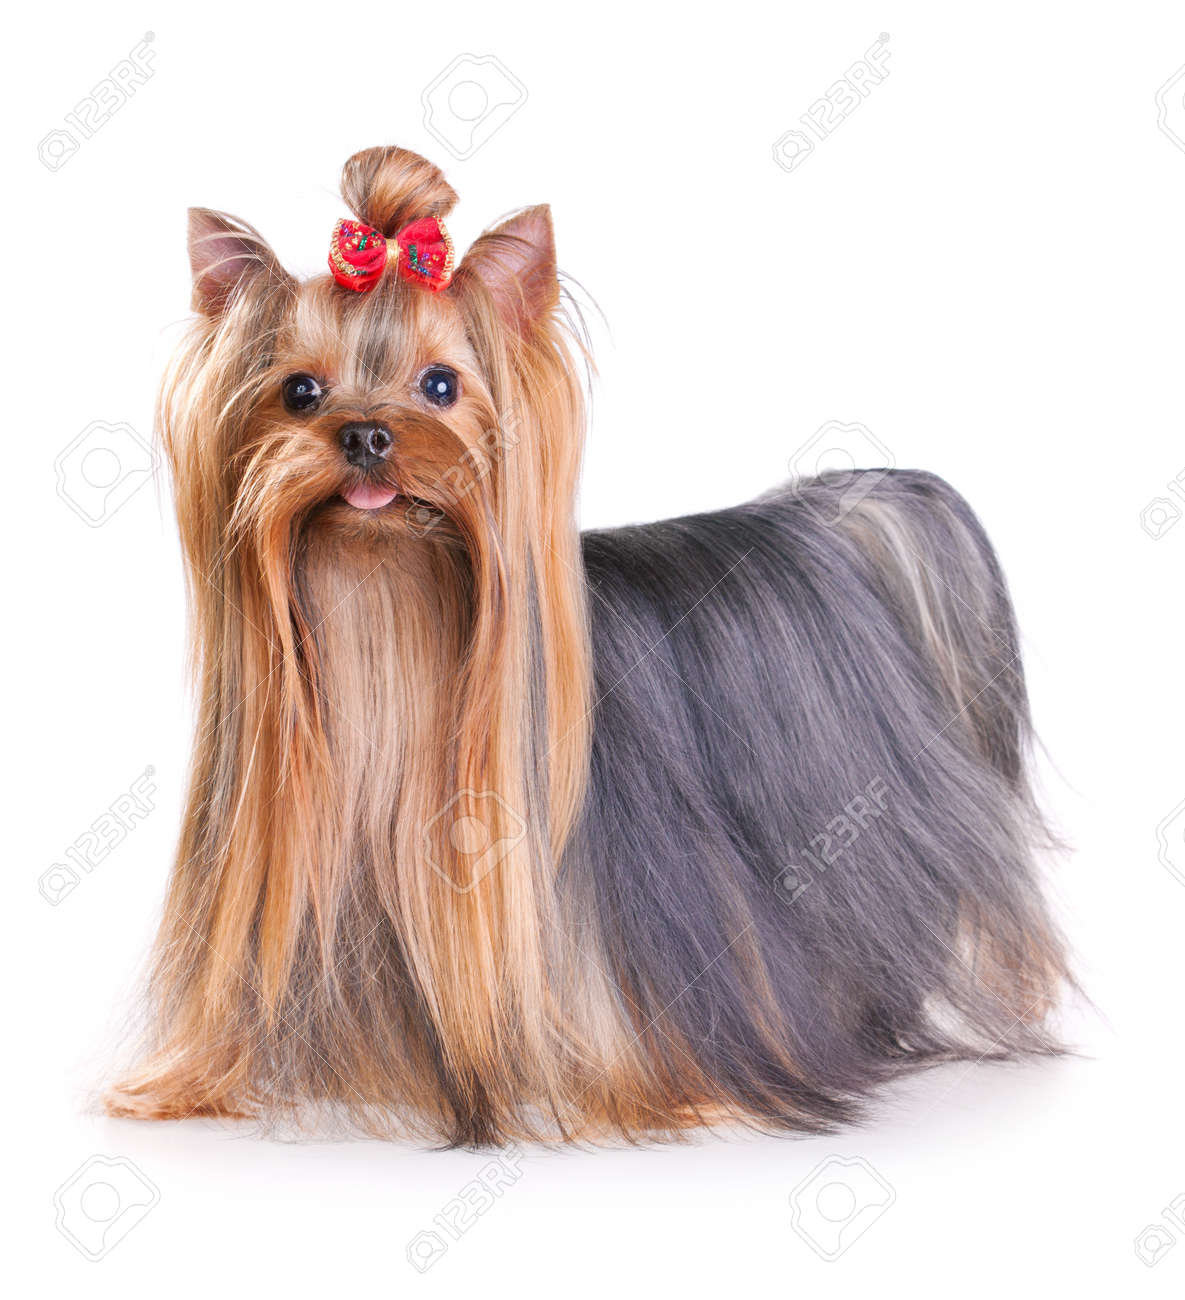 Yorkshire Terrier In Show Coat Isolated On A White Background Stock